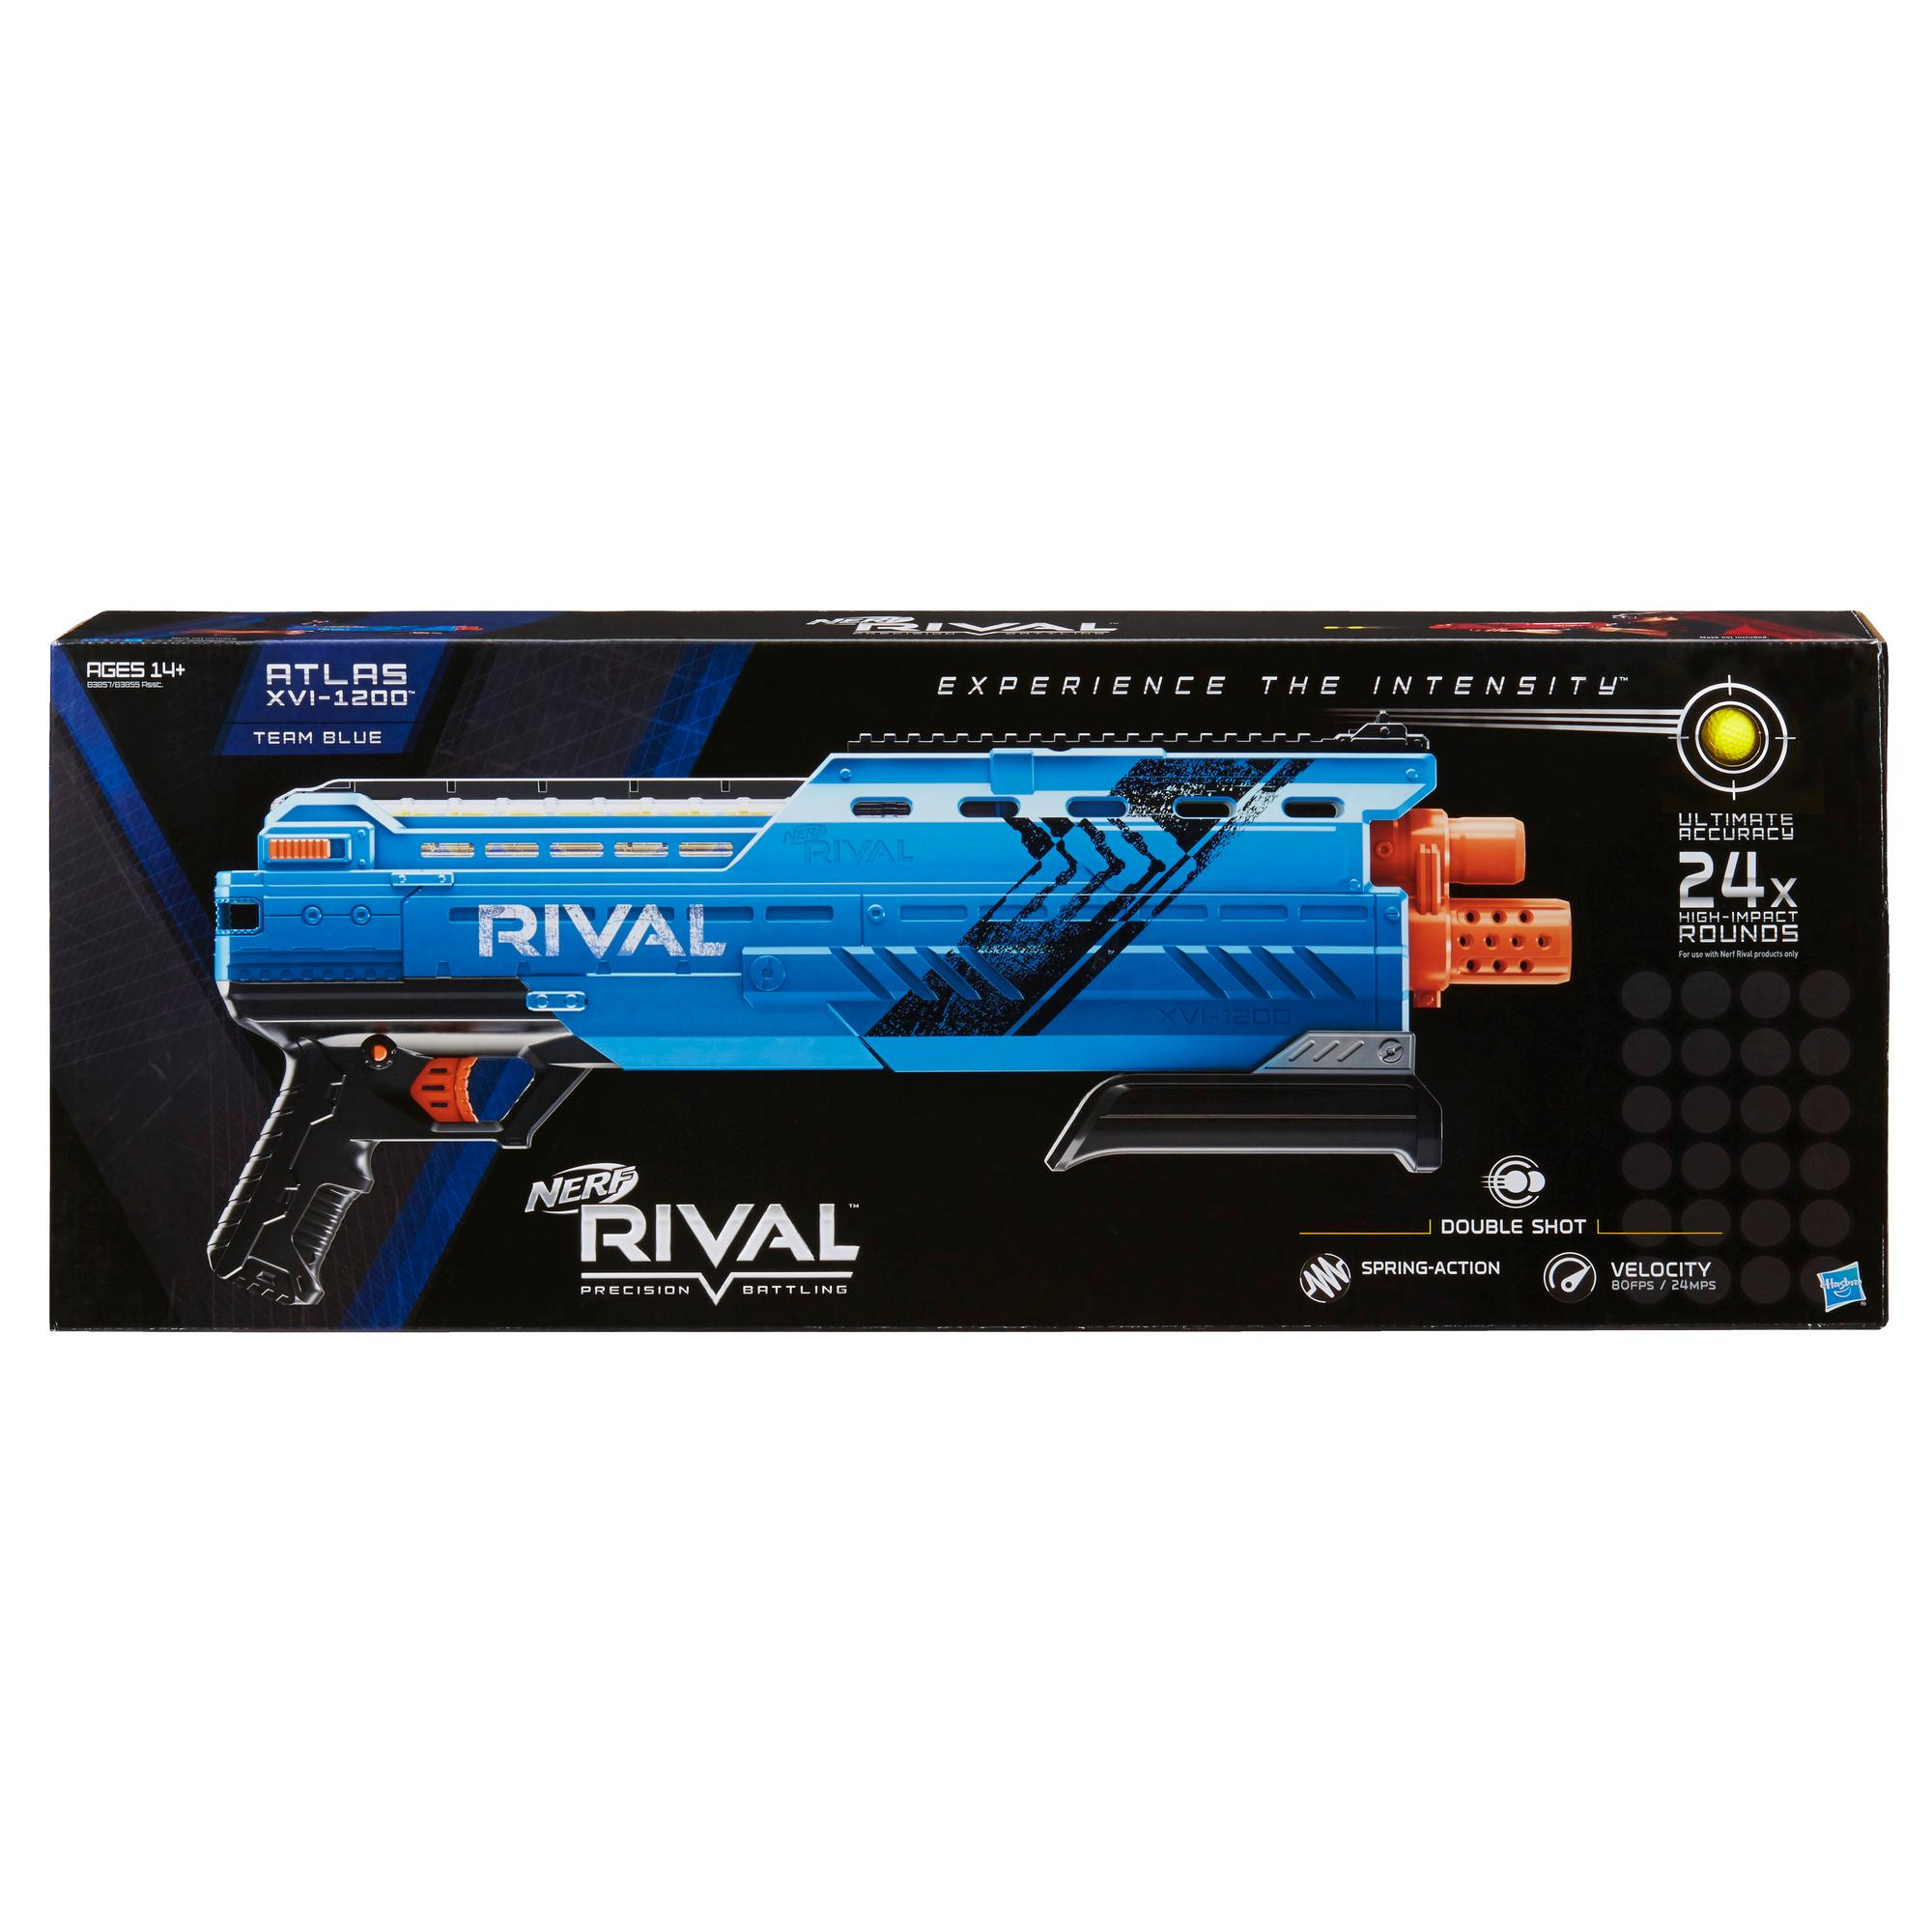 Nerf Rival Atlas XVI 1200 blaster Read more View larger